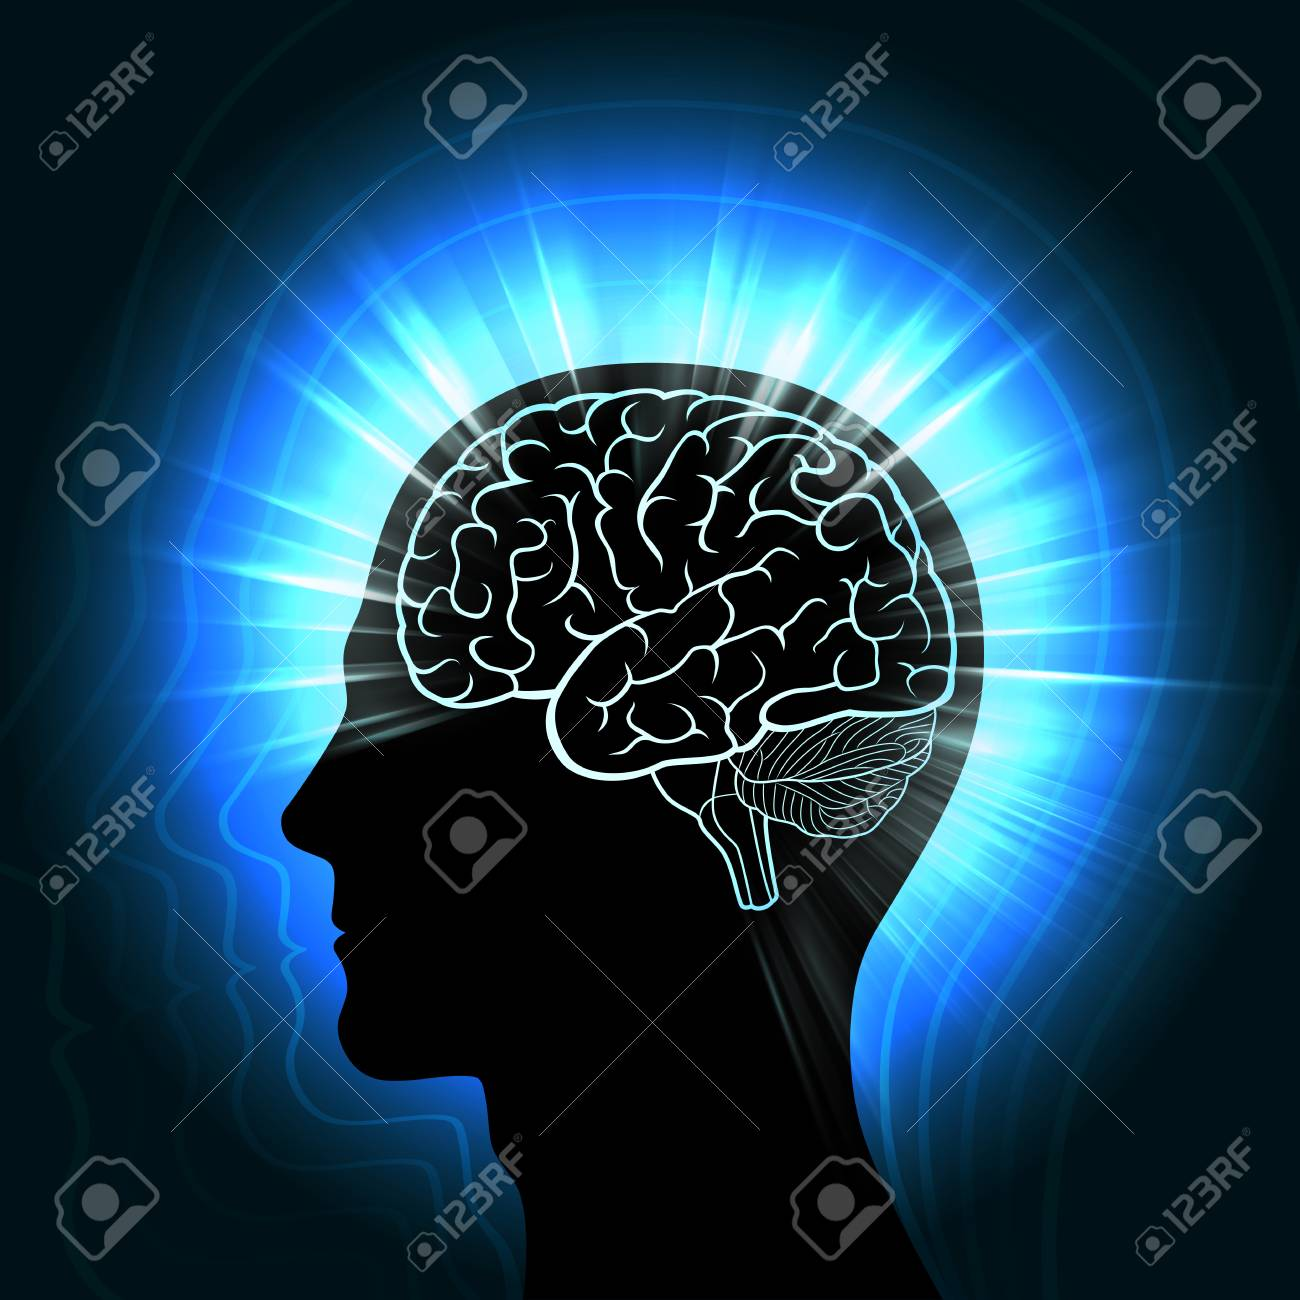 Shining a human head with a glowing outline of the brain and radiating waves, aura, the concept of man's connection with the Universe - 79038543